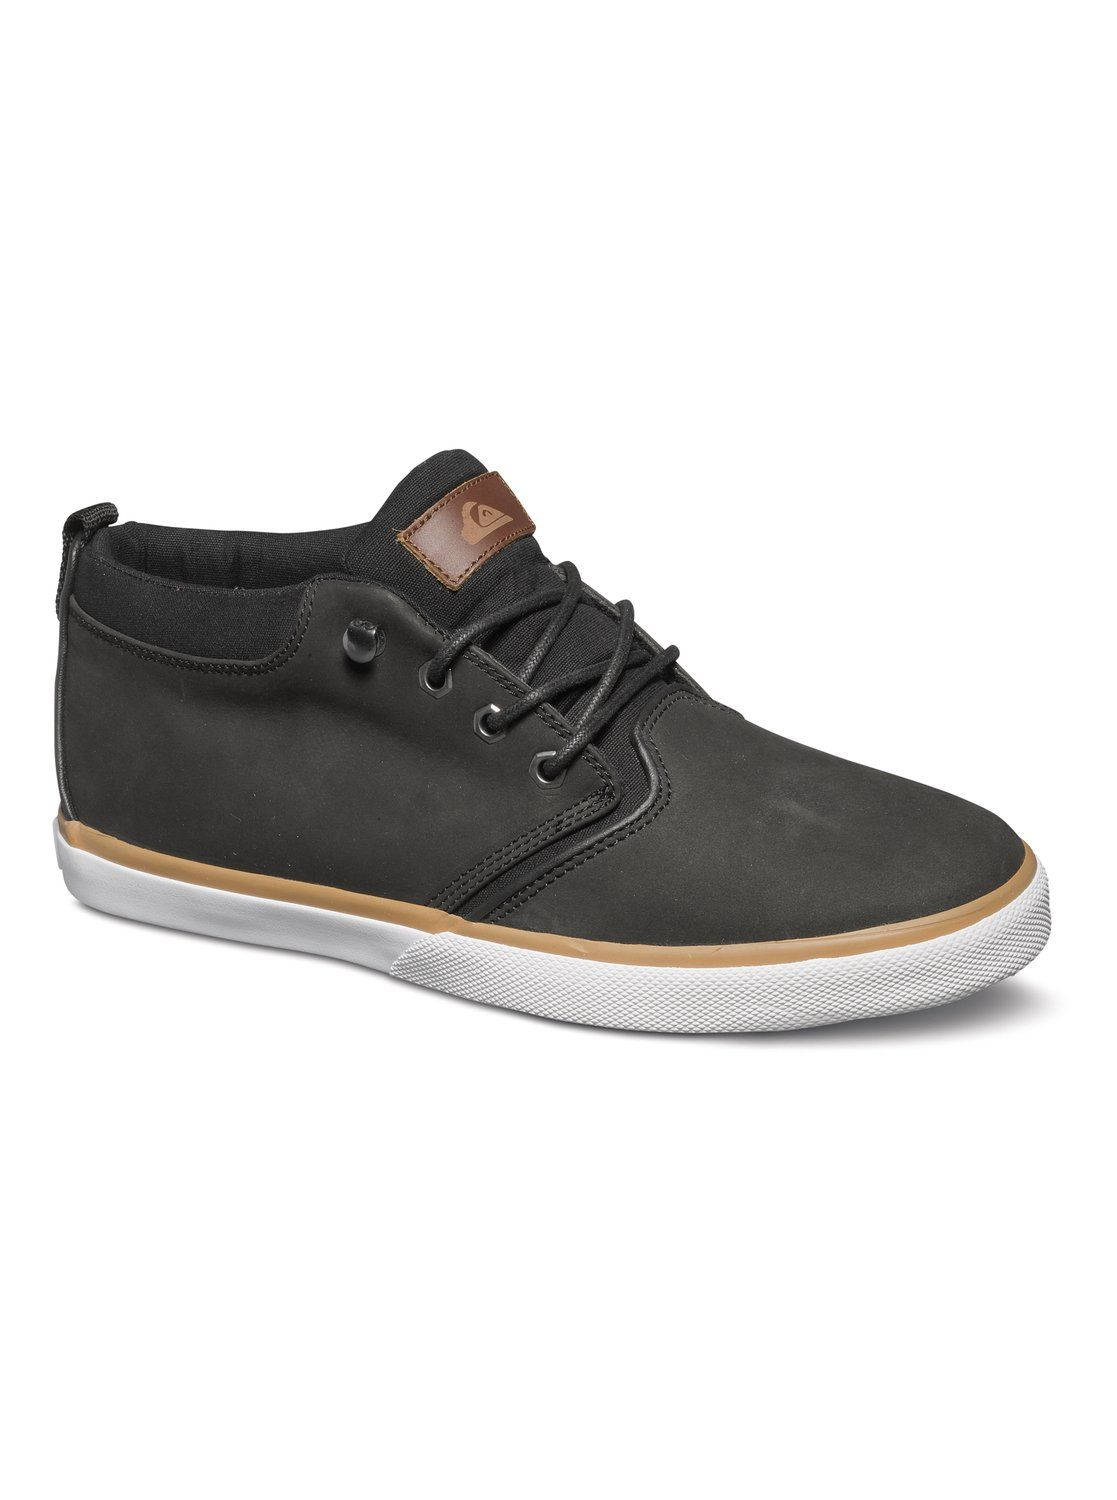 quiksilver, Griffin FG Suede Shoes, BLACK/BROWN/WHITE (xkcw)